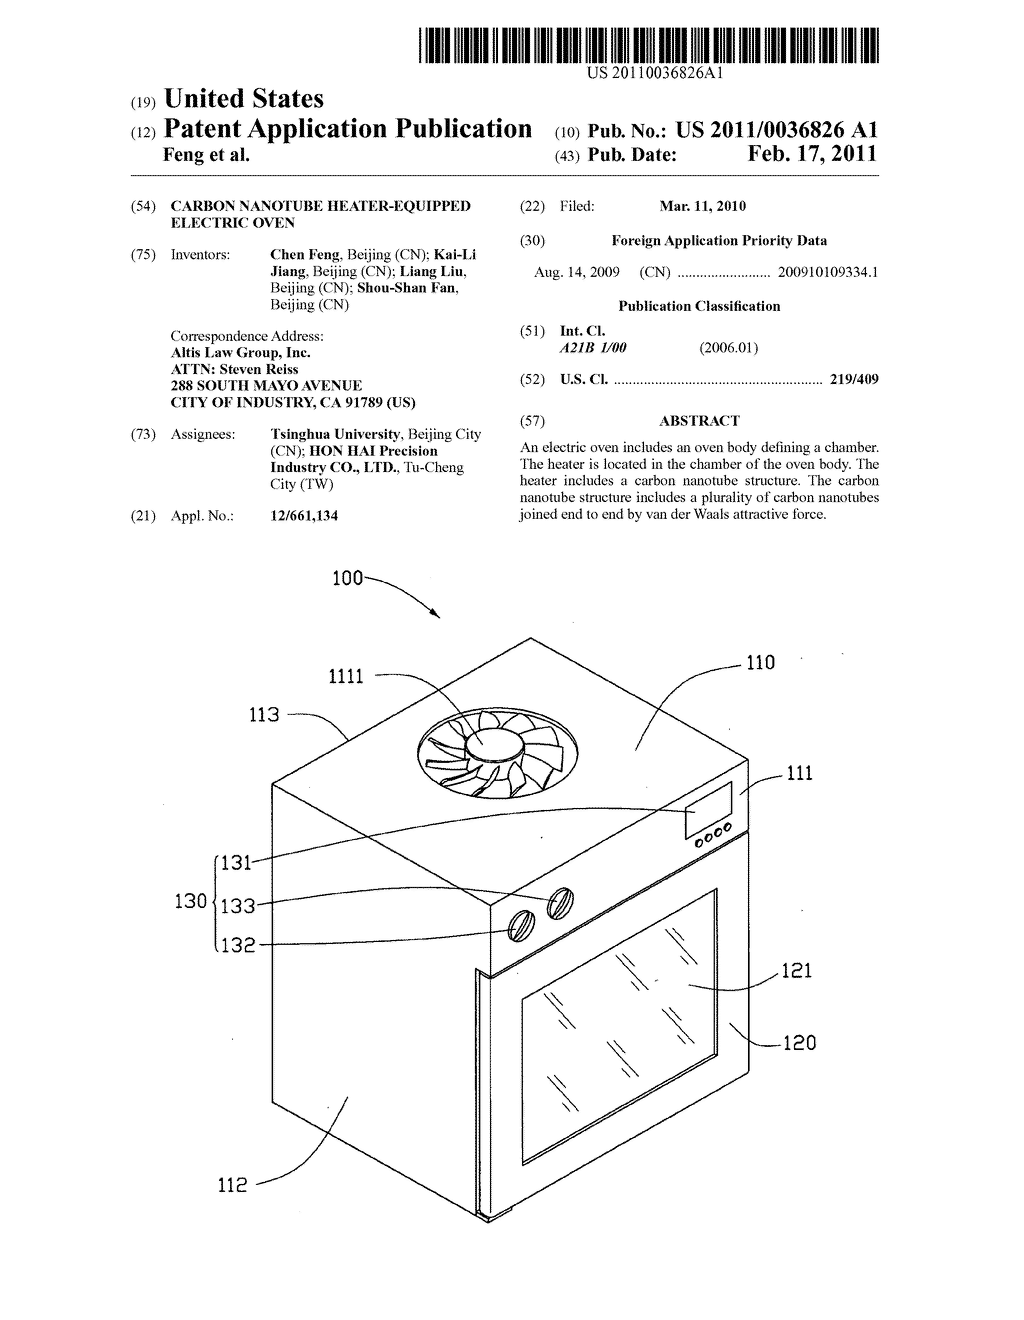 carbon nanotube heater-equipped electric oven - diagram, schematic, and  image 01  patents